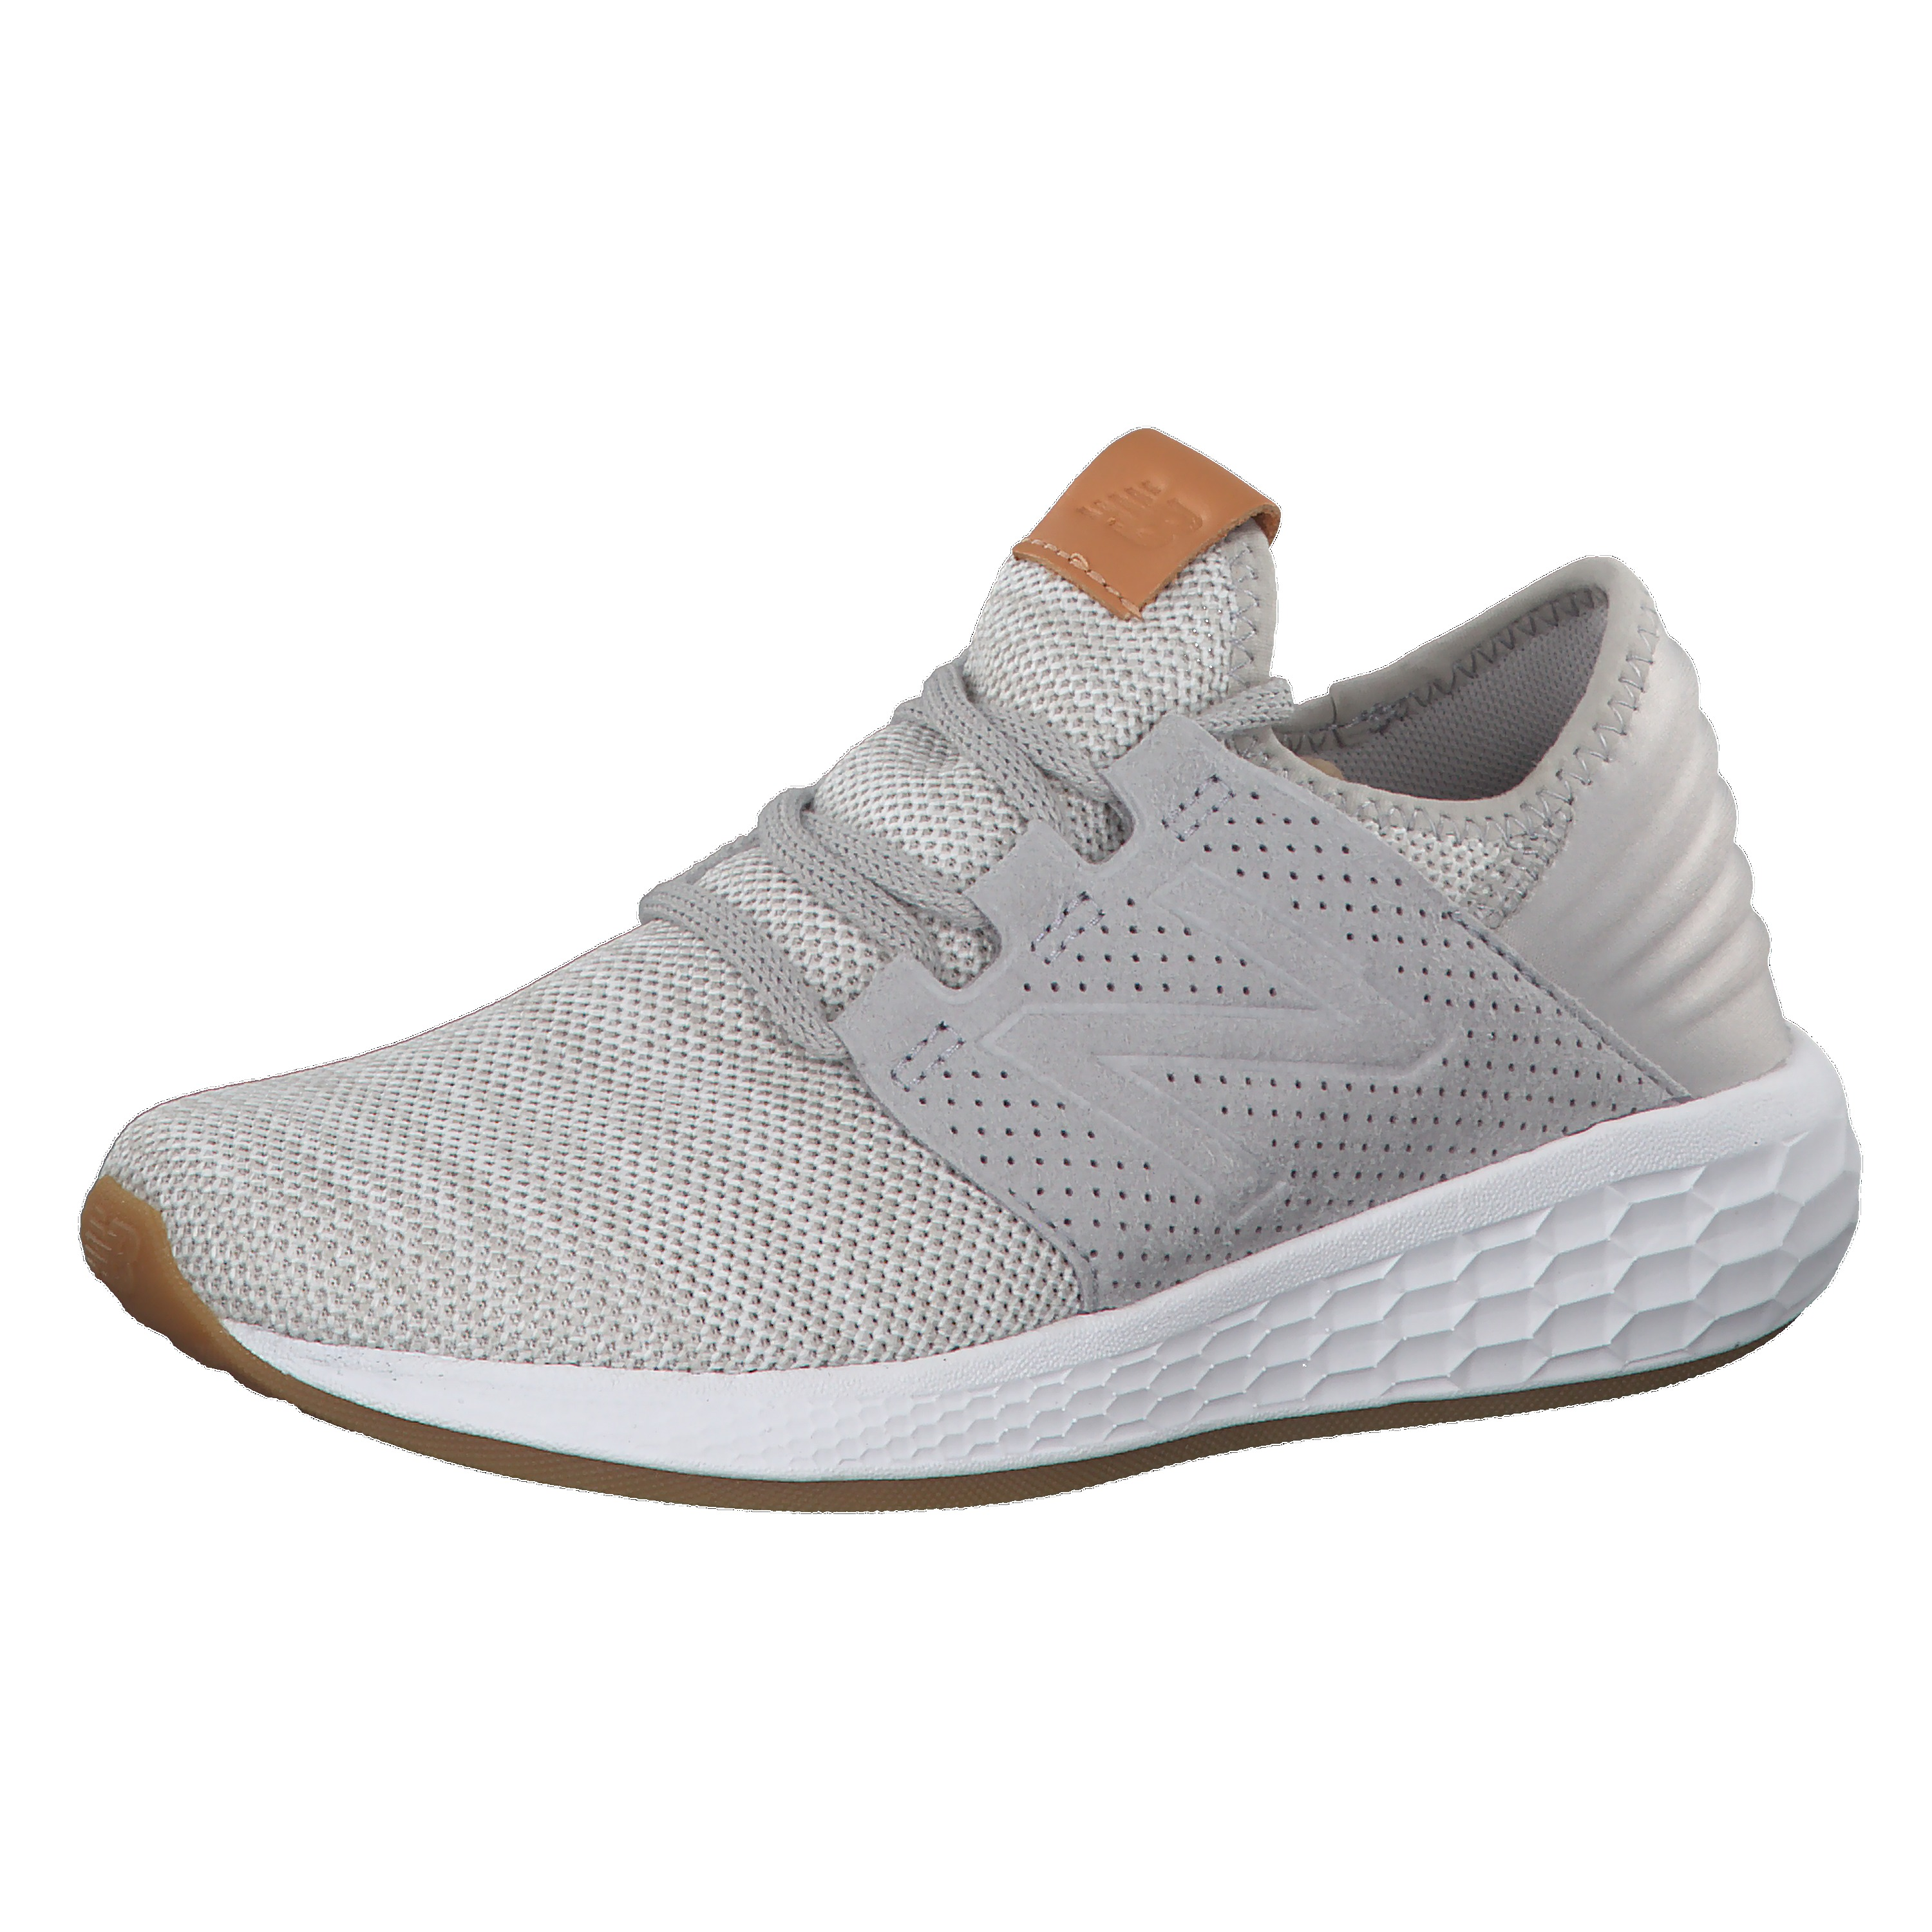 New Balance Damen Laufschuhe Fresh Foam Cruz v2...